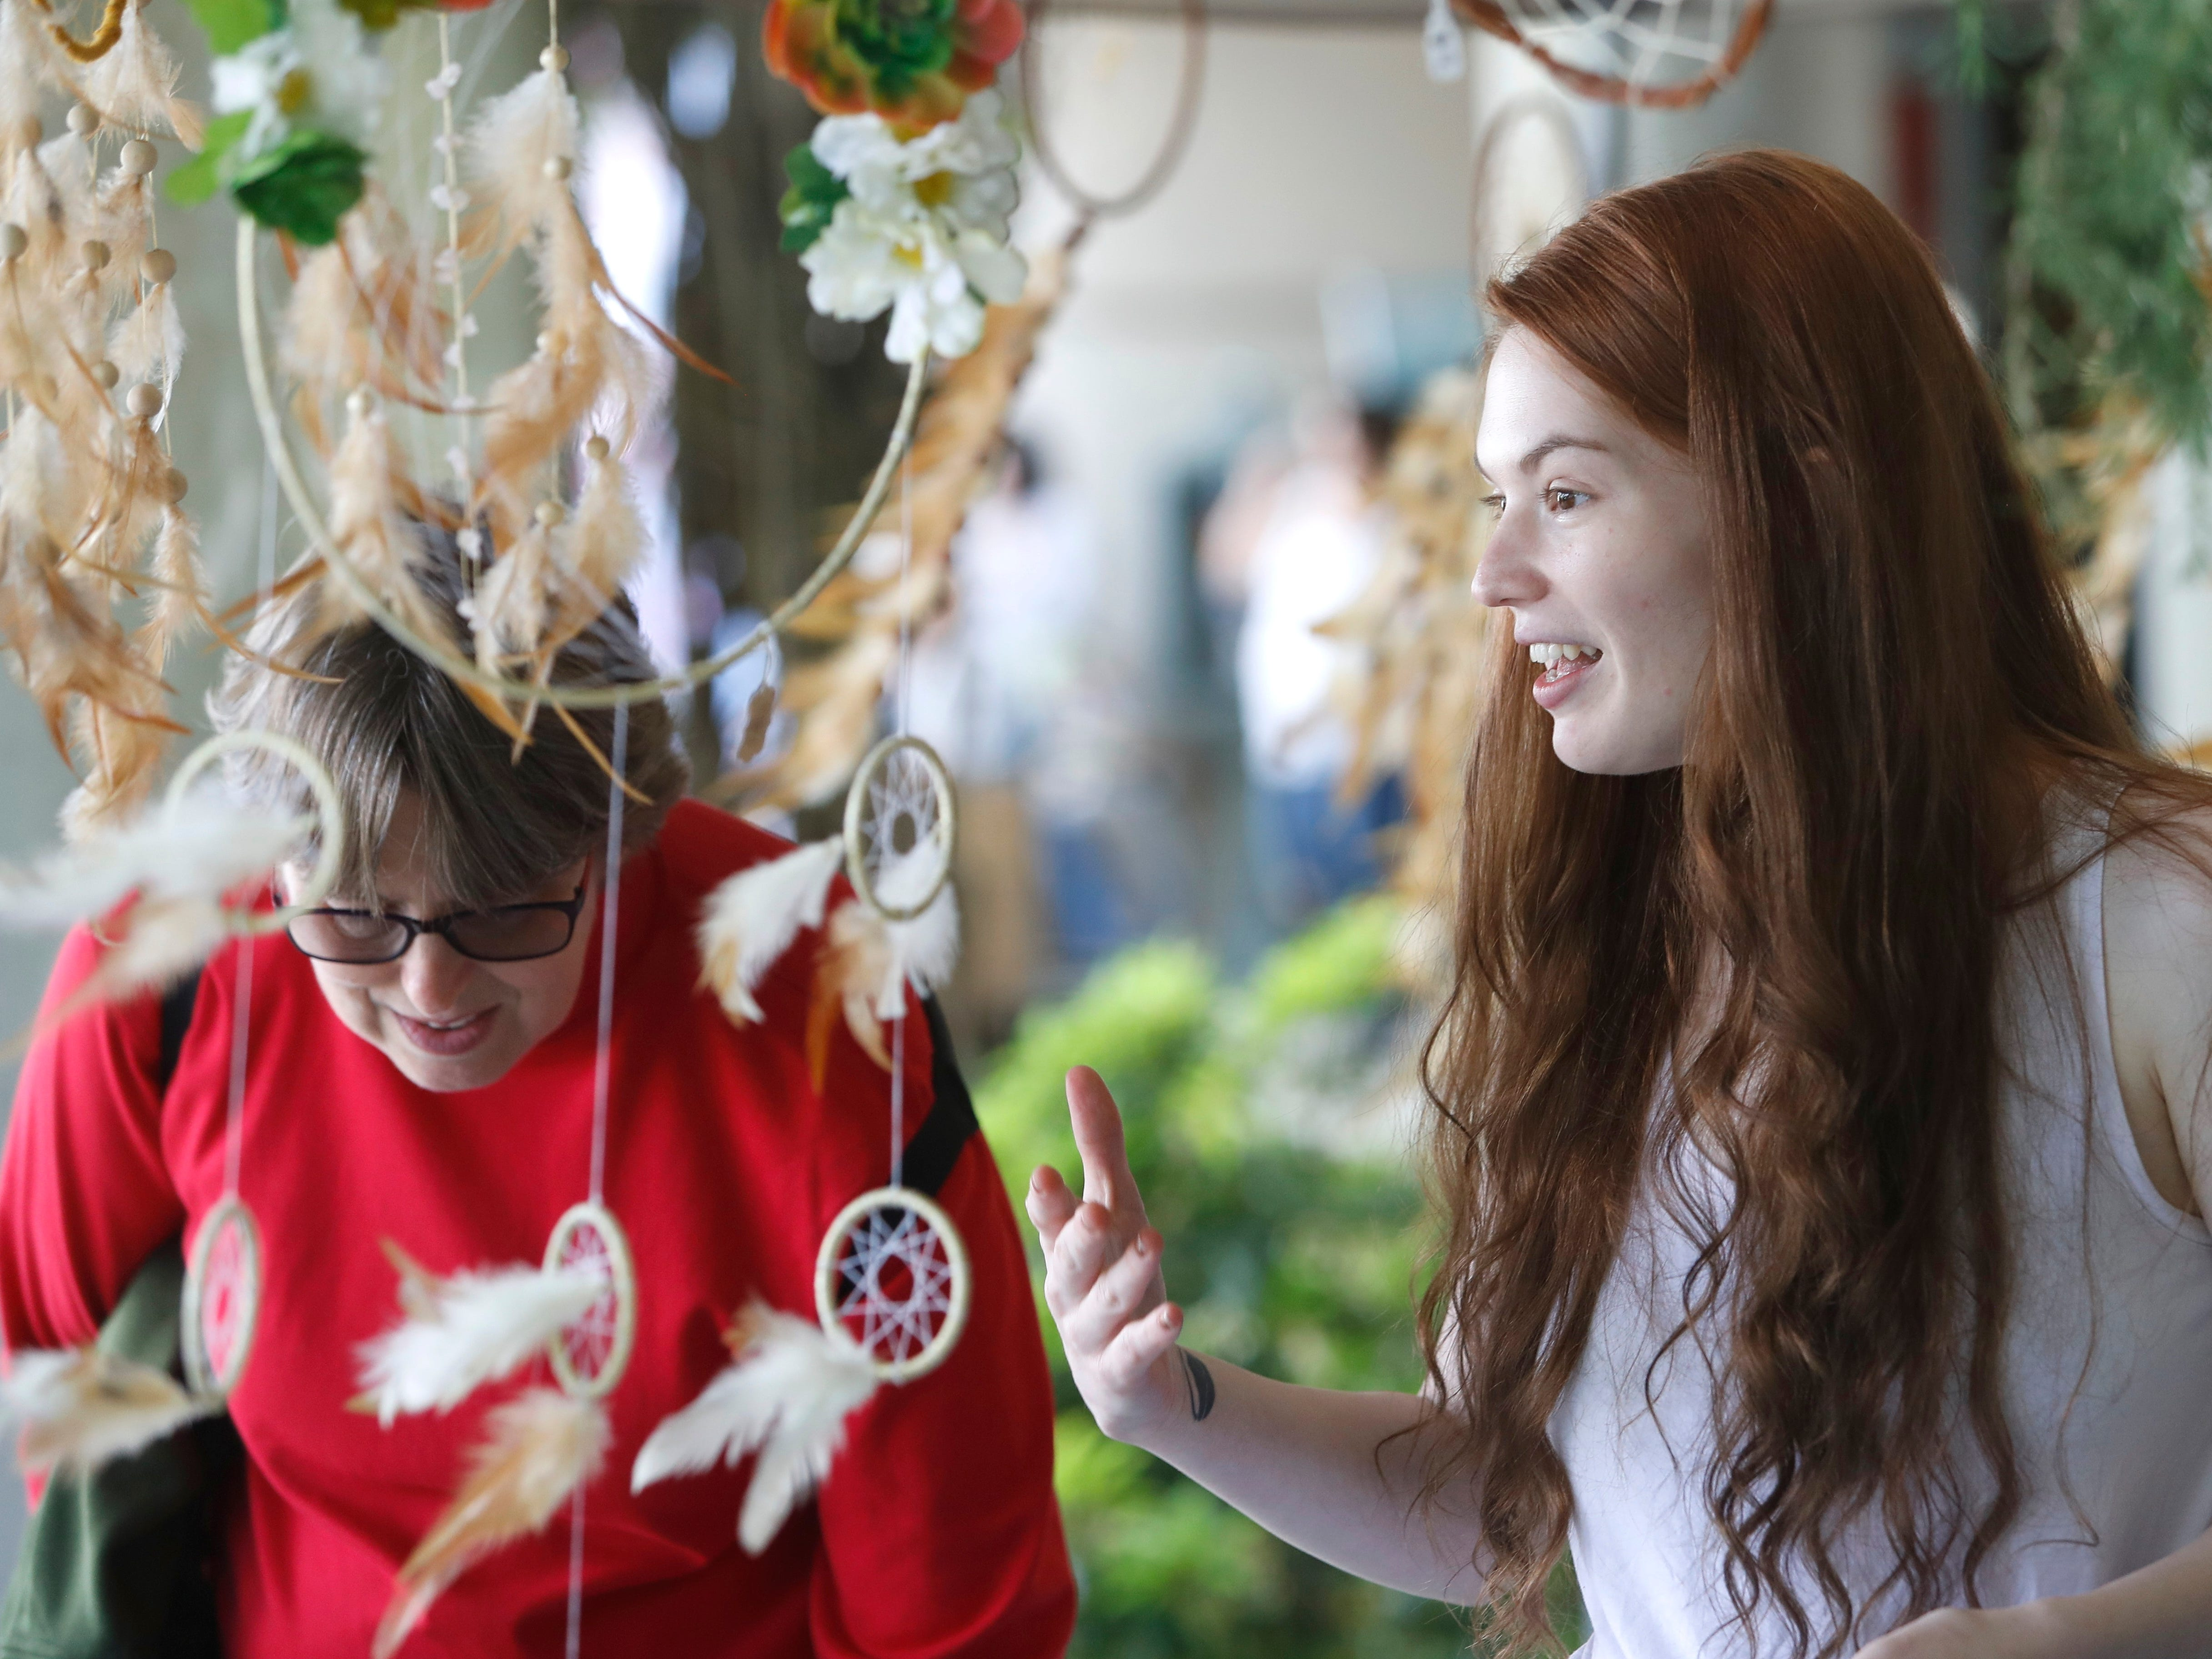 Devan Sheehy of Redding talks to customers Saturday at her dreamcatchers booth during the Whole Earth and Watershed Festival at Redding City Hall.